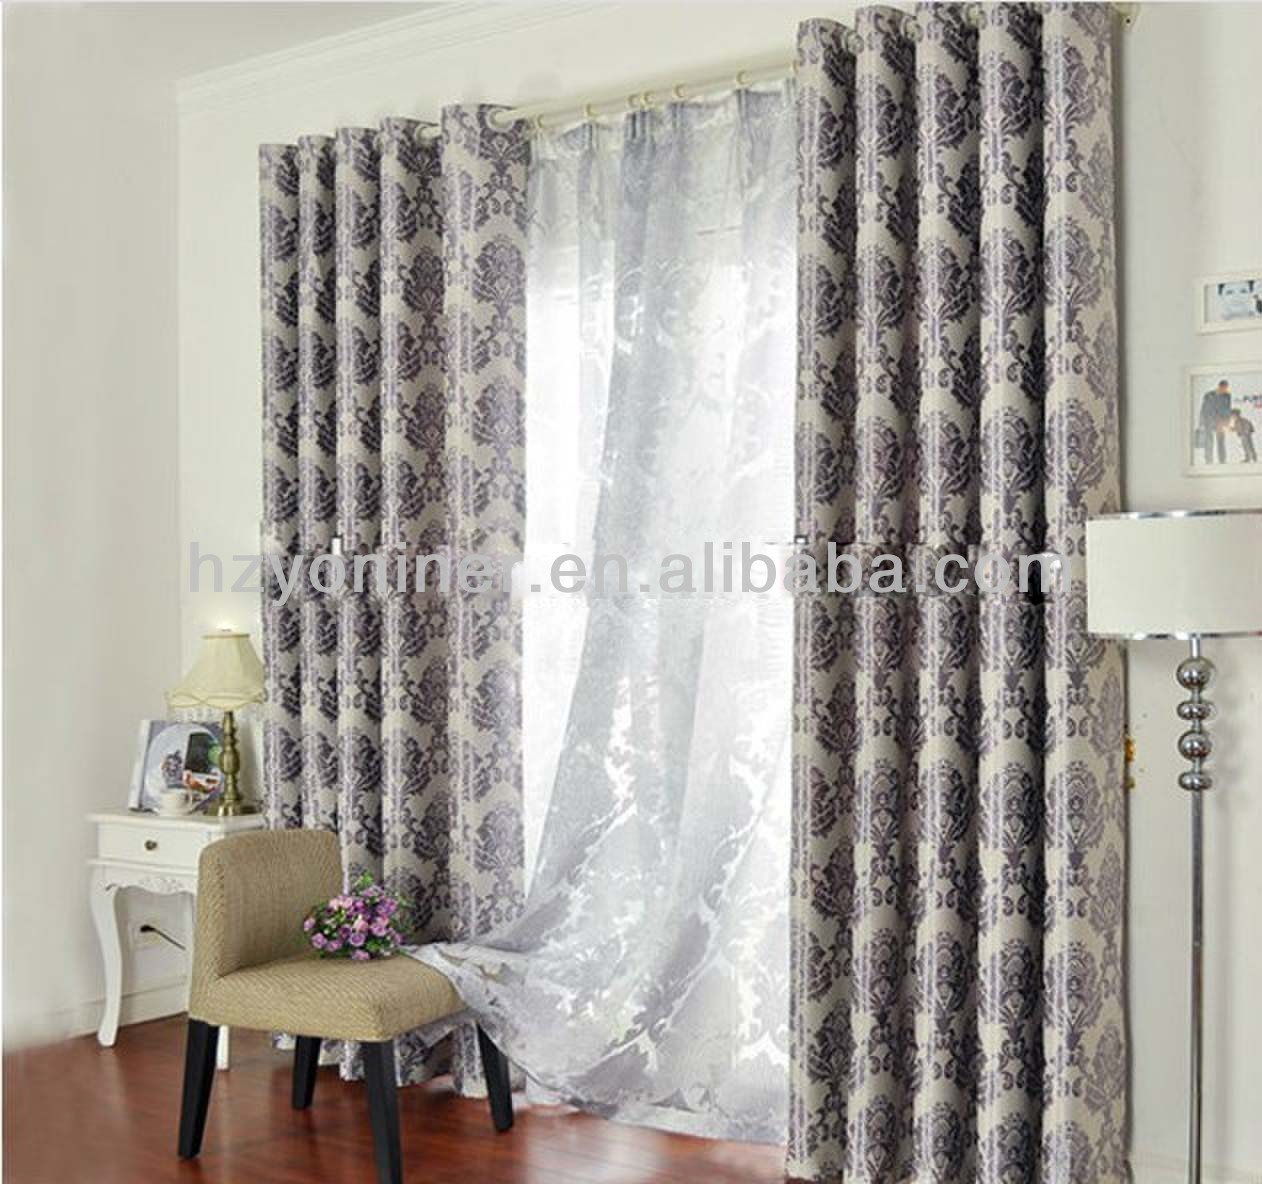 2015 Fashionable Design Luxury Jacquard Blackout Fabric/Classical Design Jacquard Upholstery Fabric